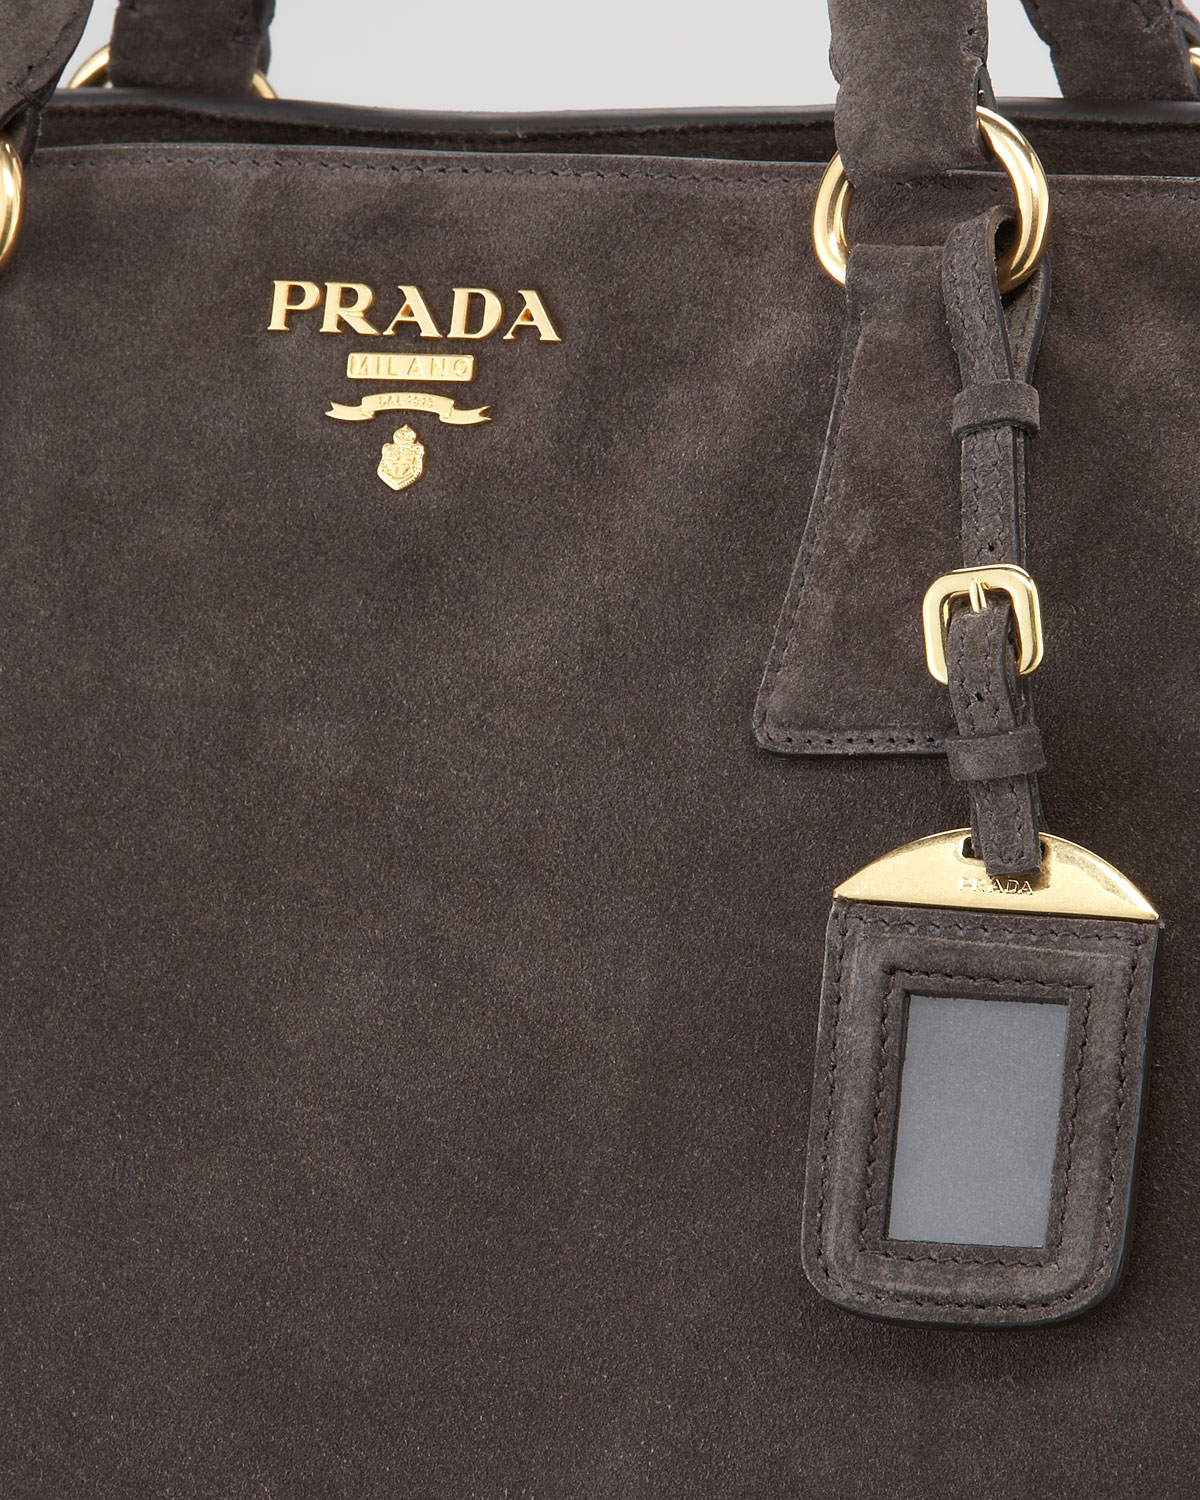 prada handbags replica - Prada Suede Tote Bag in Brown (grafite) | Lyst